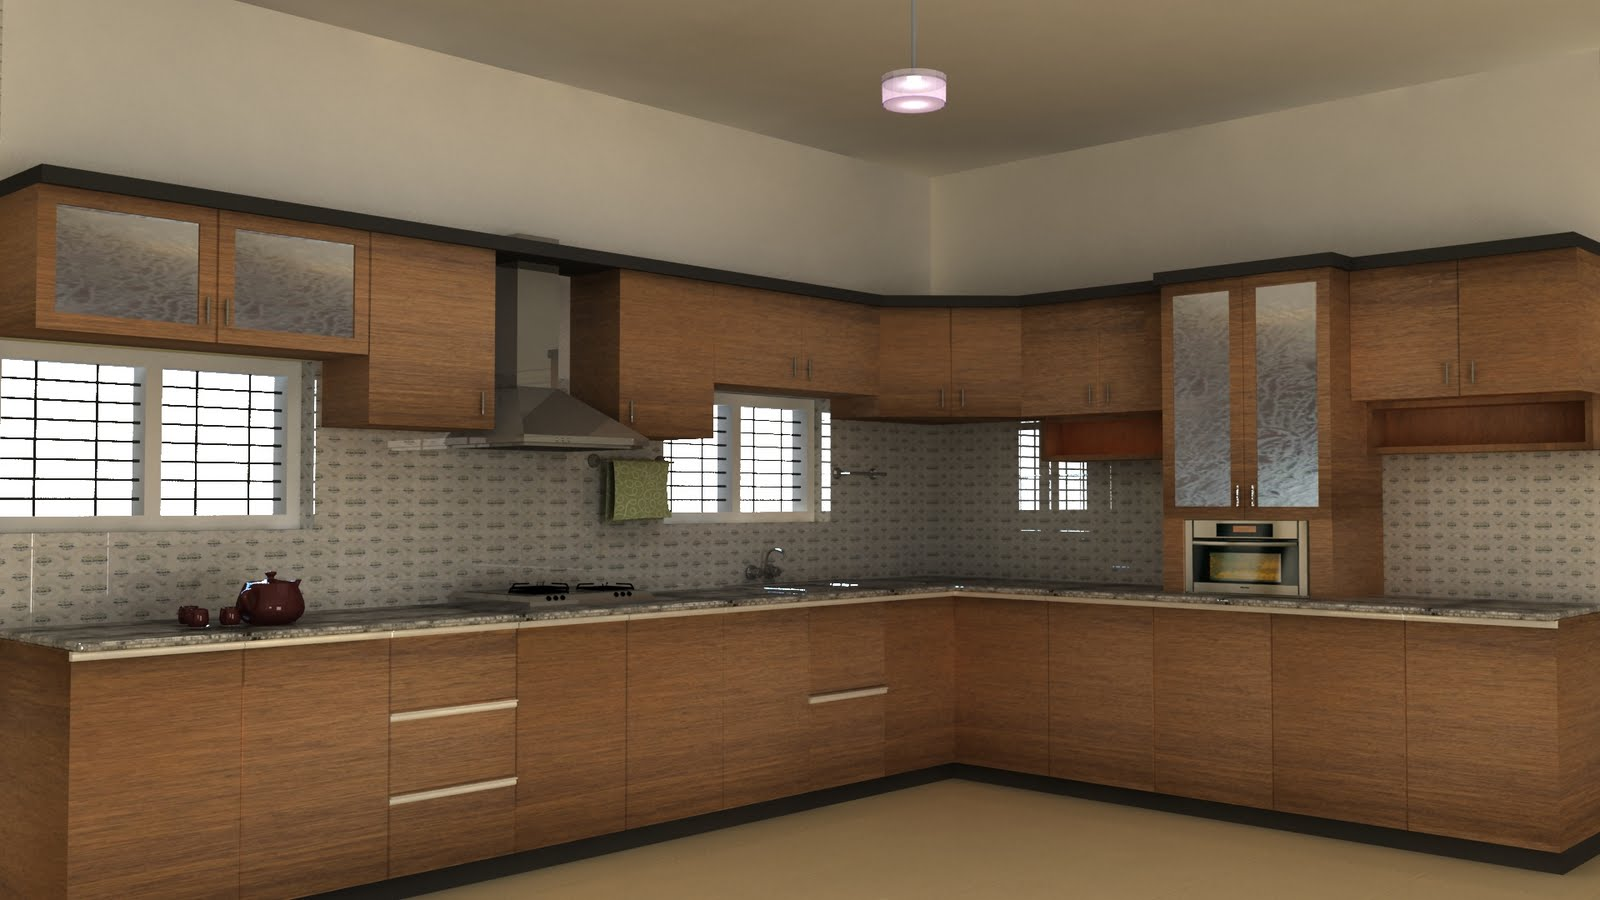 Architectural designing kitchen interiors Kitchen interior design